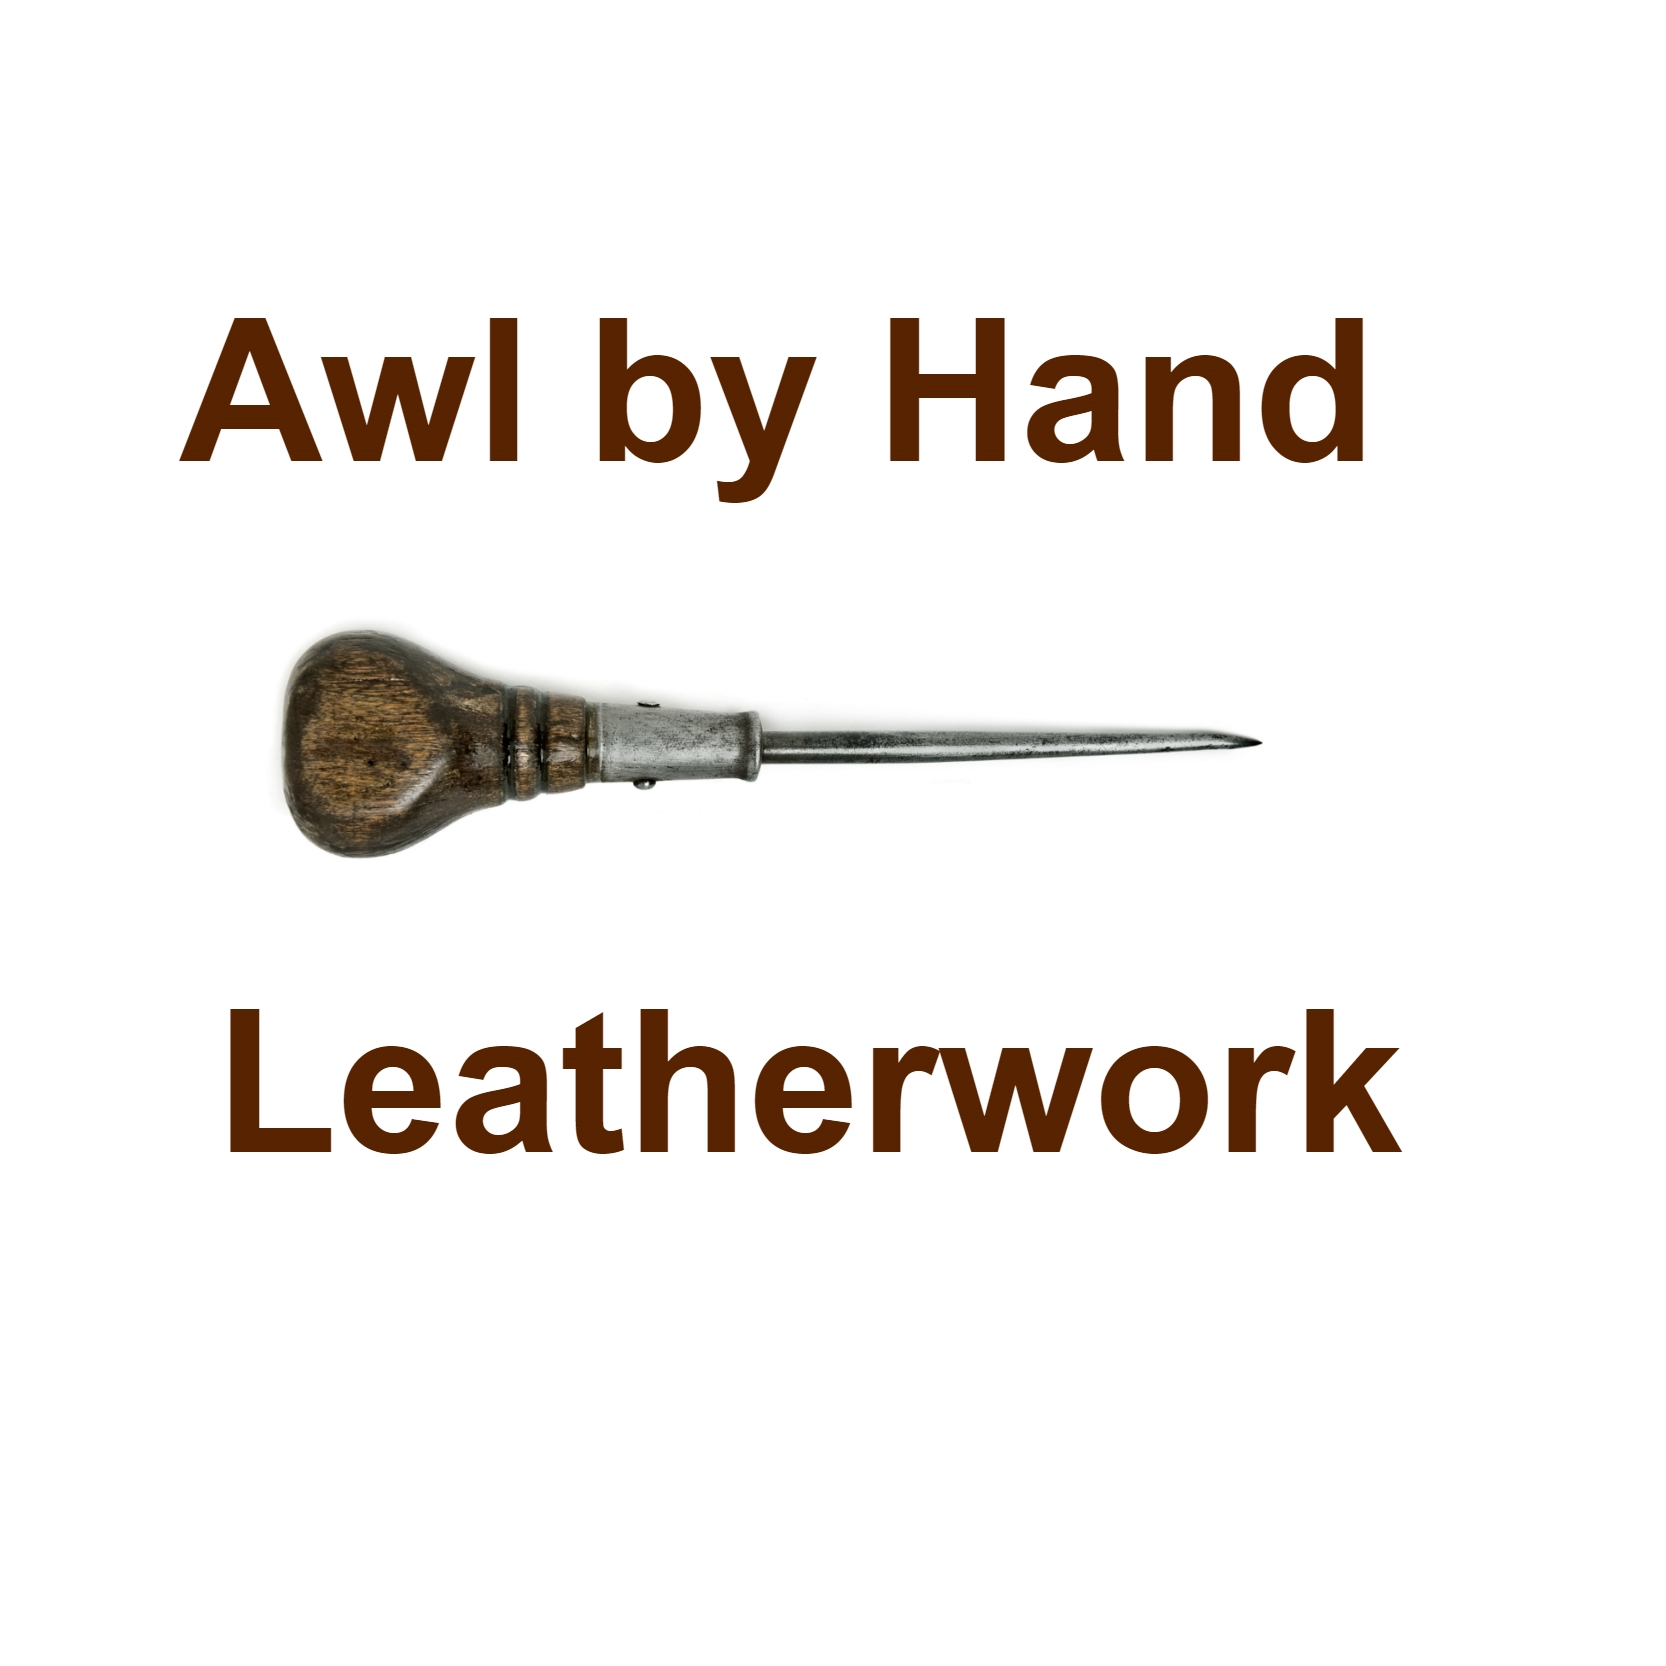 Awl by Hand logo